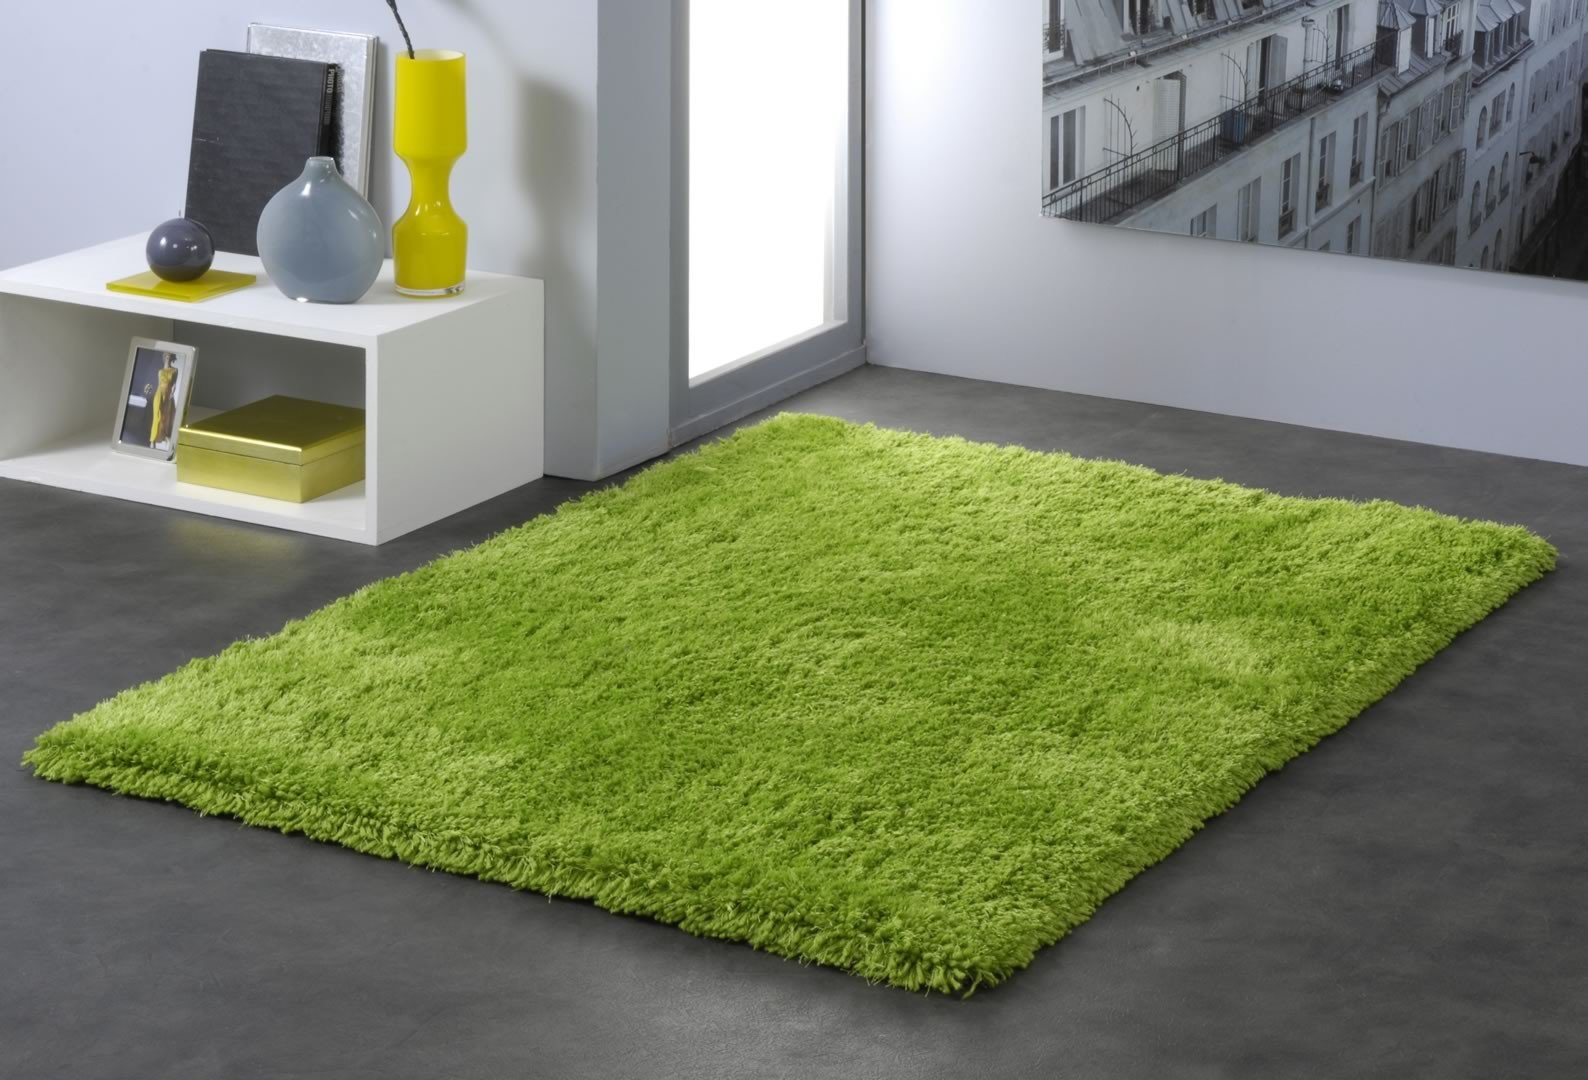 ikea tapis shaggy cool ikea tapis shaggy with ikea tapis shaggy shaggy rug with ikea tapis. Black Bedroom Furniture Sets. Home Design Ideas